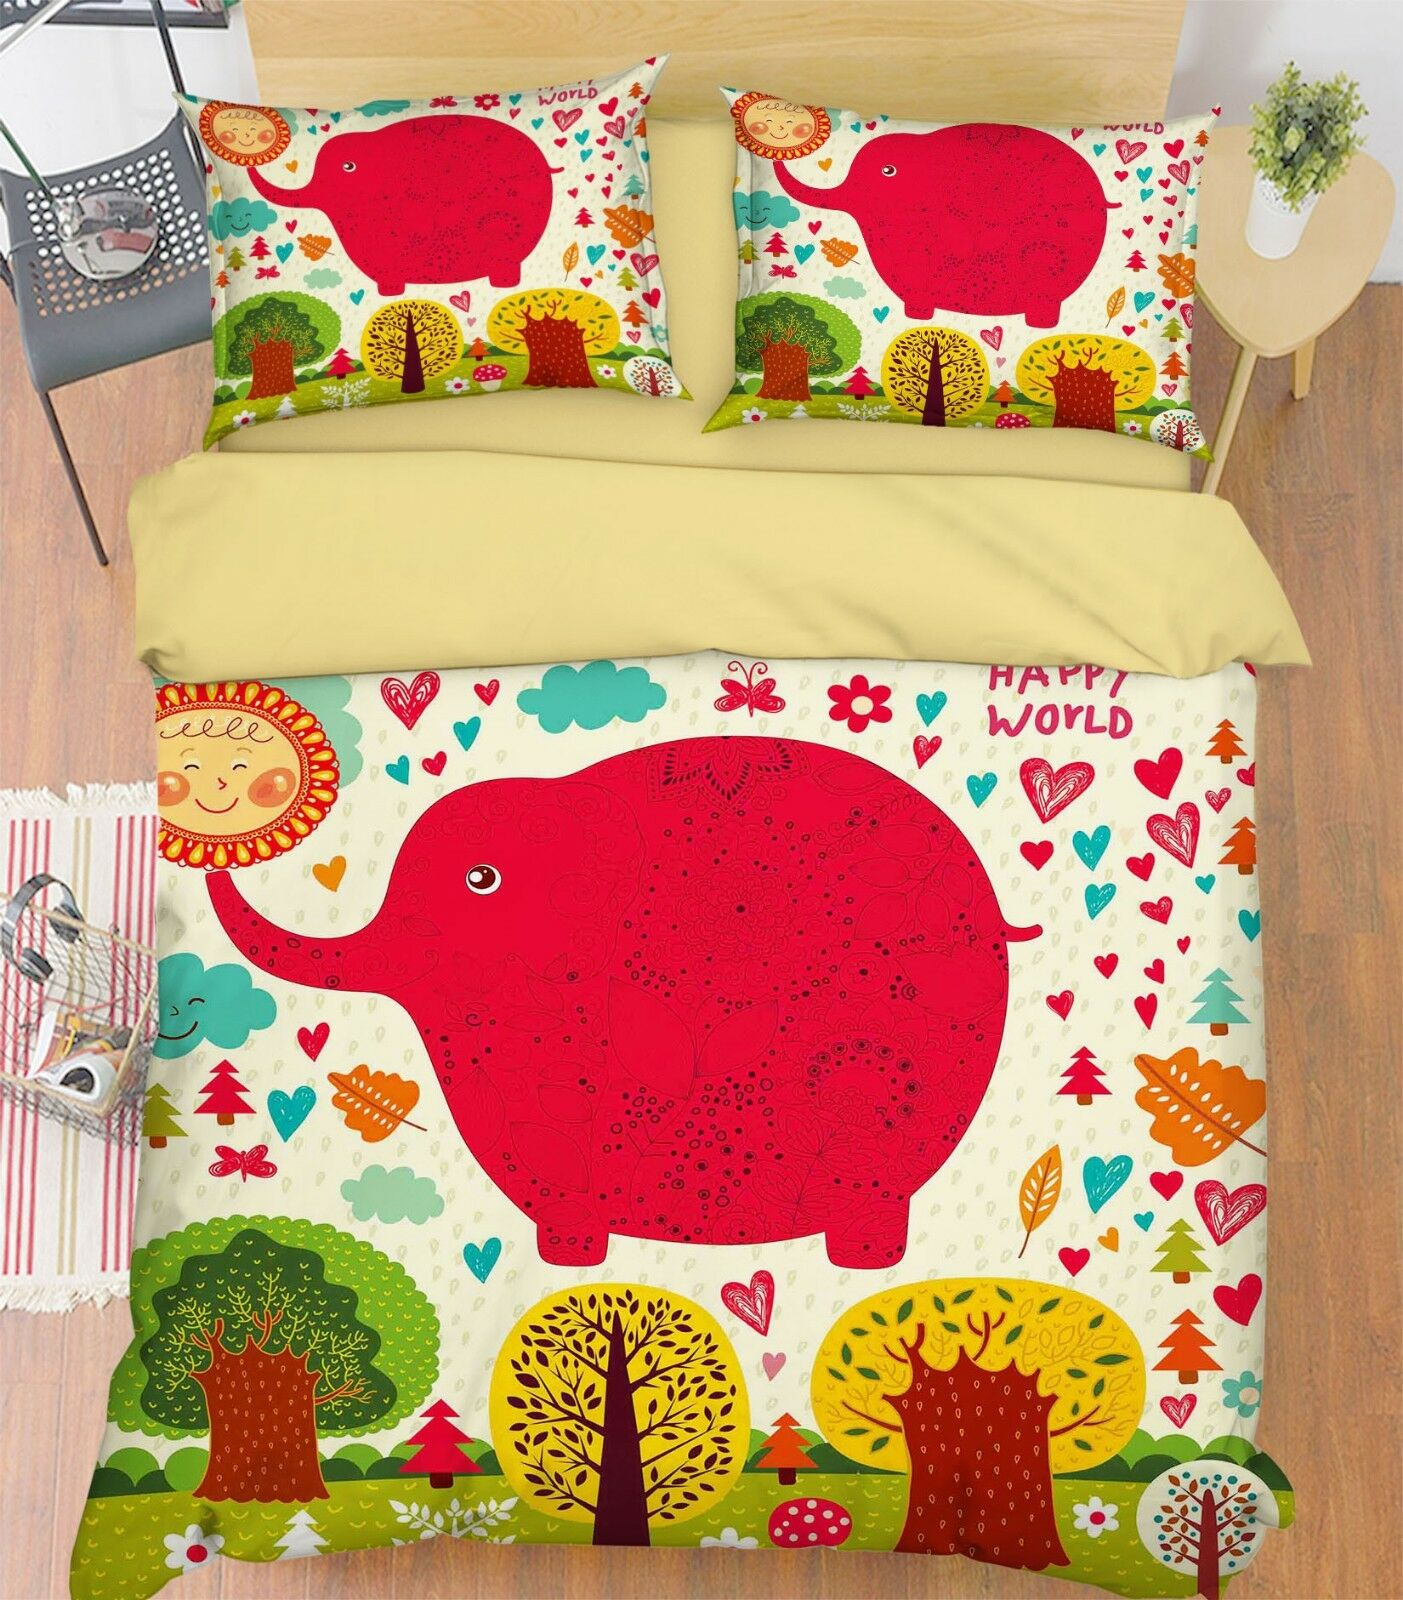 3D Paint Elephant 678 Bed Pillowcases Quilt Duvet Cover Set Single King UK Lemon